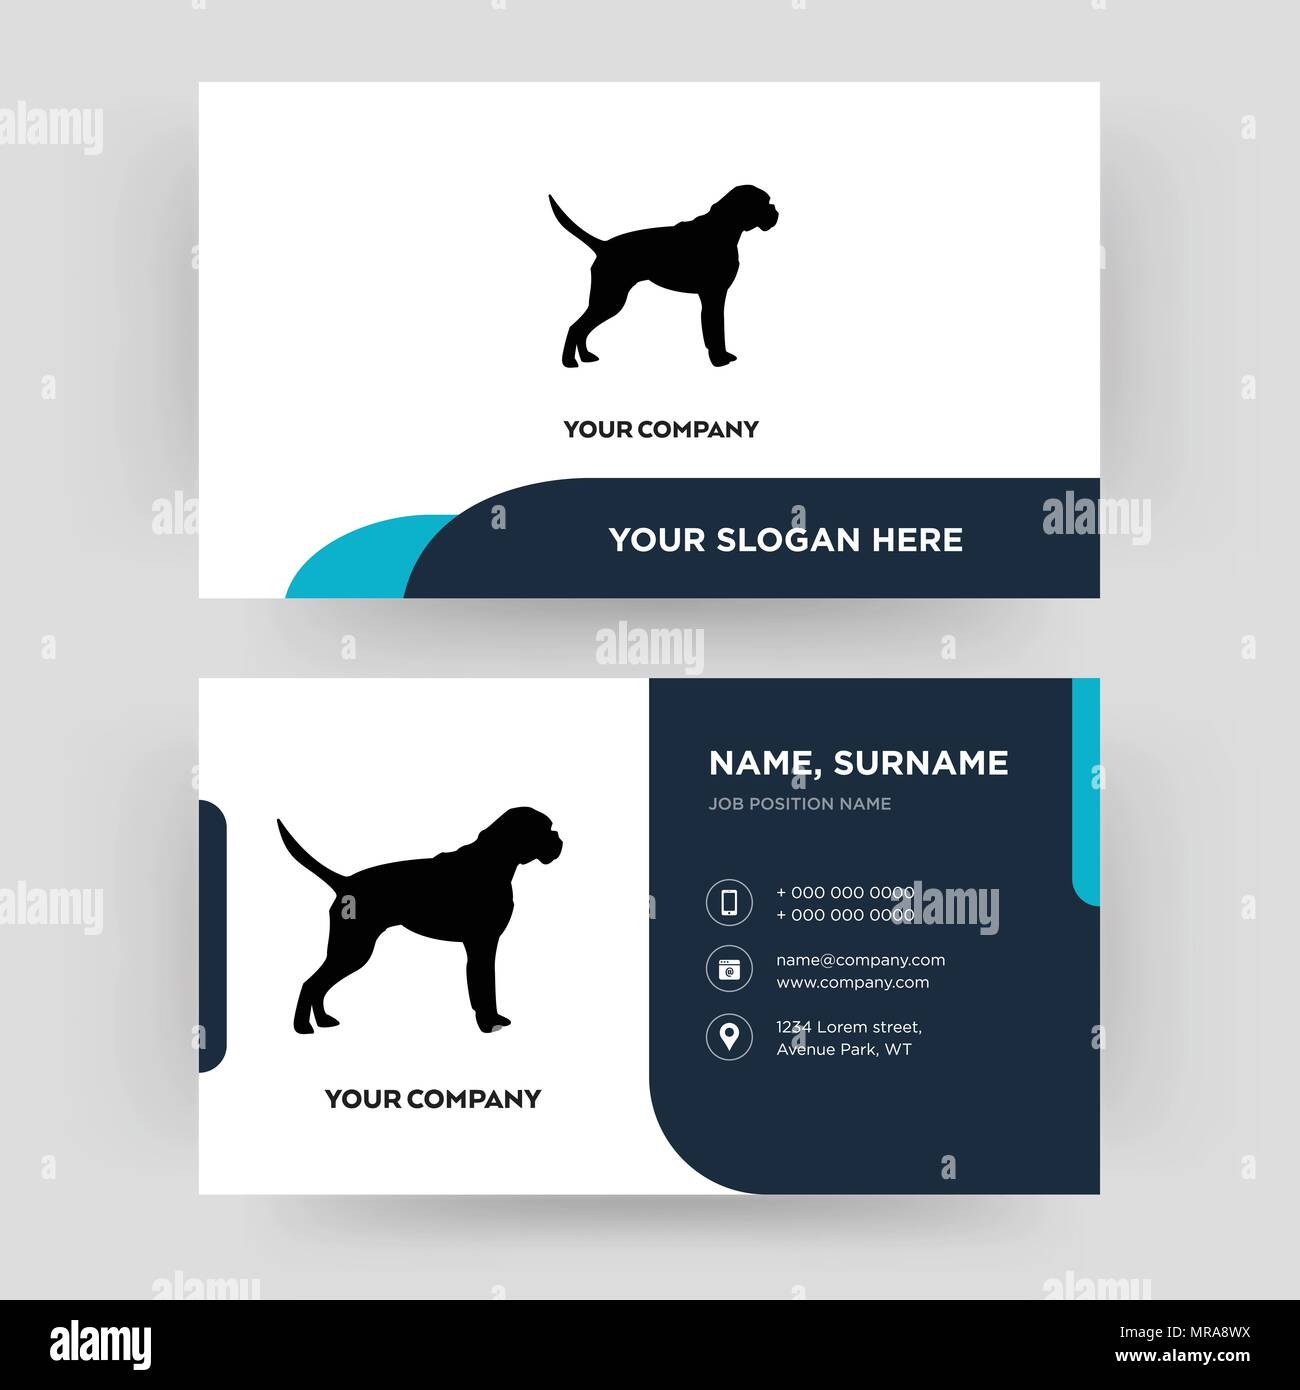 boxer dog, business card design template, Visiting for your company, Modern Creative and Clean identity Card Vector Stock Vector